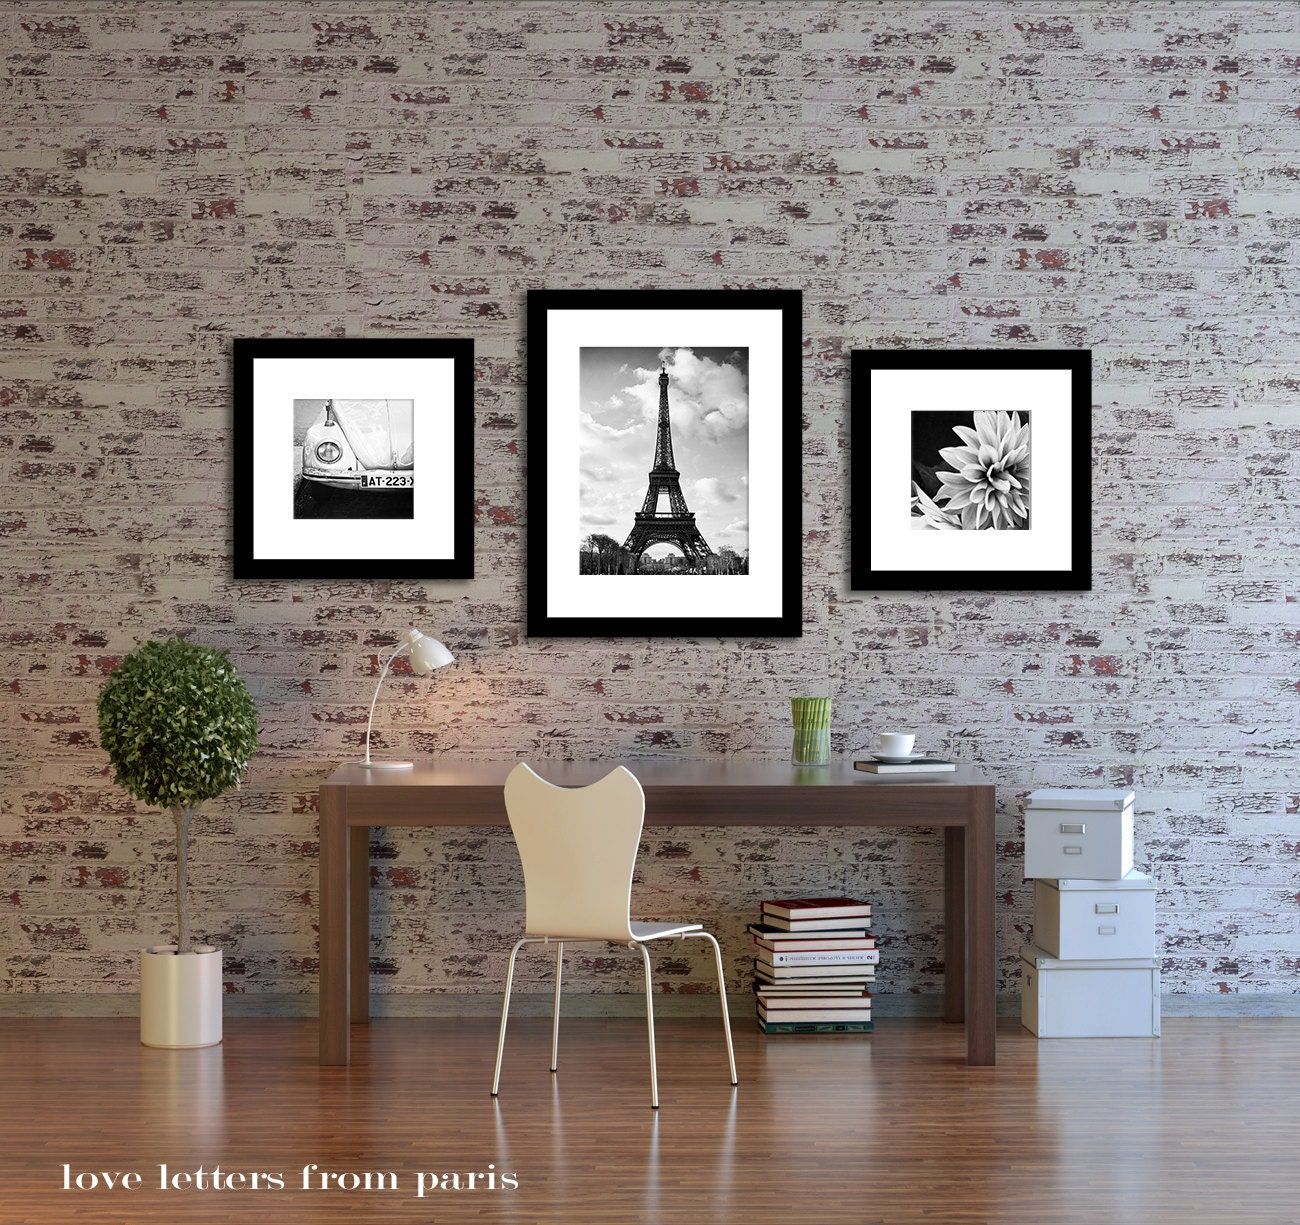 Paris photograph home decor paris wall art paris decor for Wall decoration items